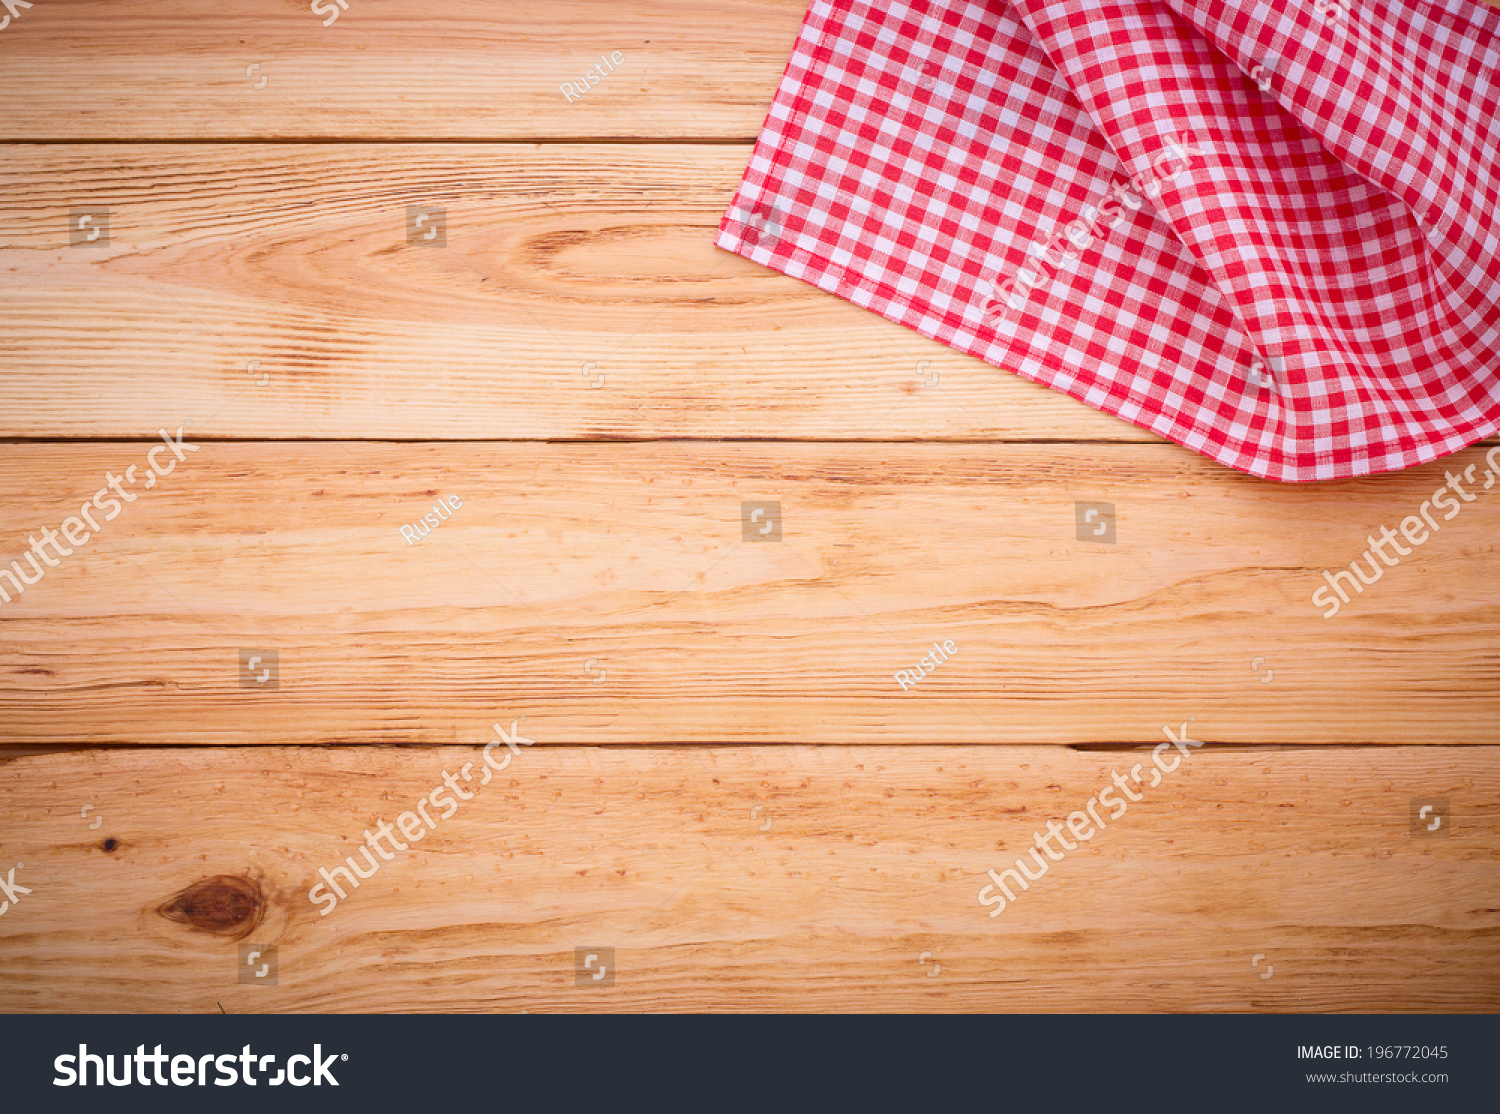 Wood texture background wooden table covered stock photo